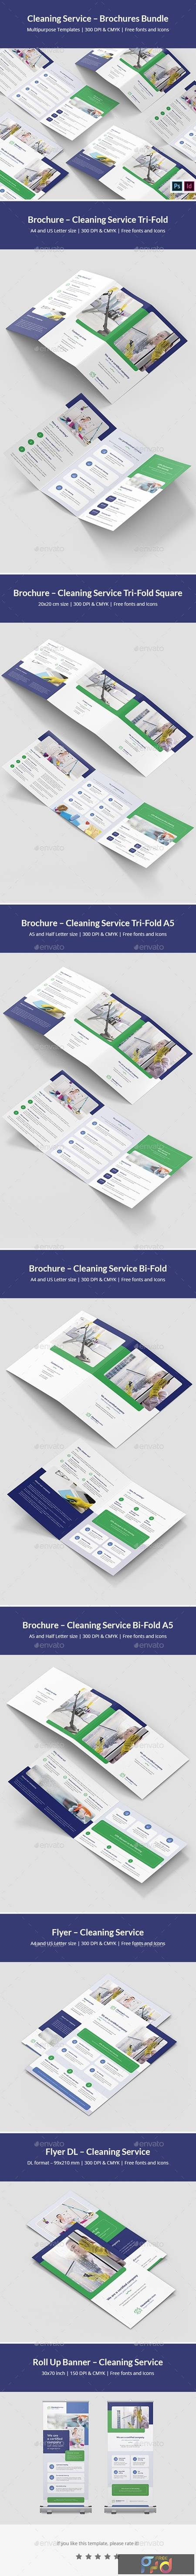 Cleaning Service – Brochures Bundle Print Templates 8 in 1 25675641 1